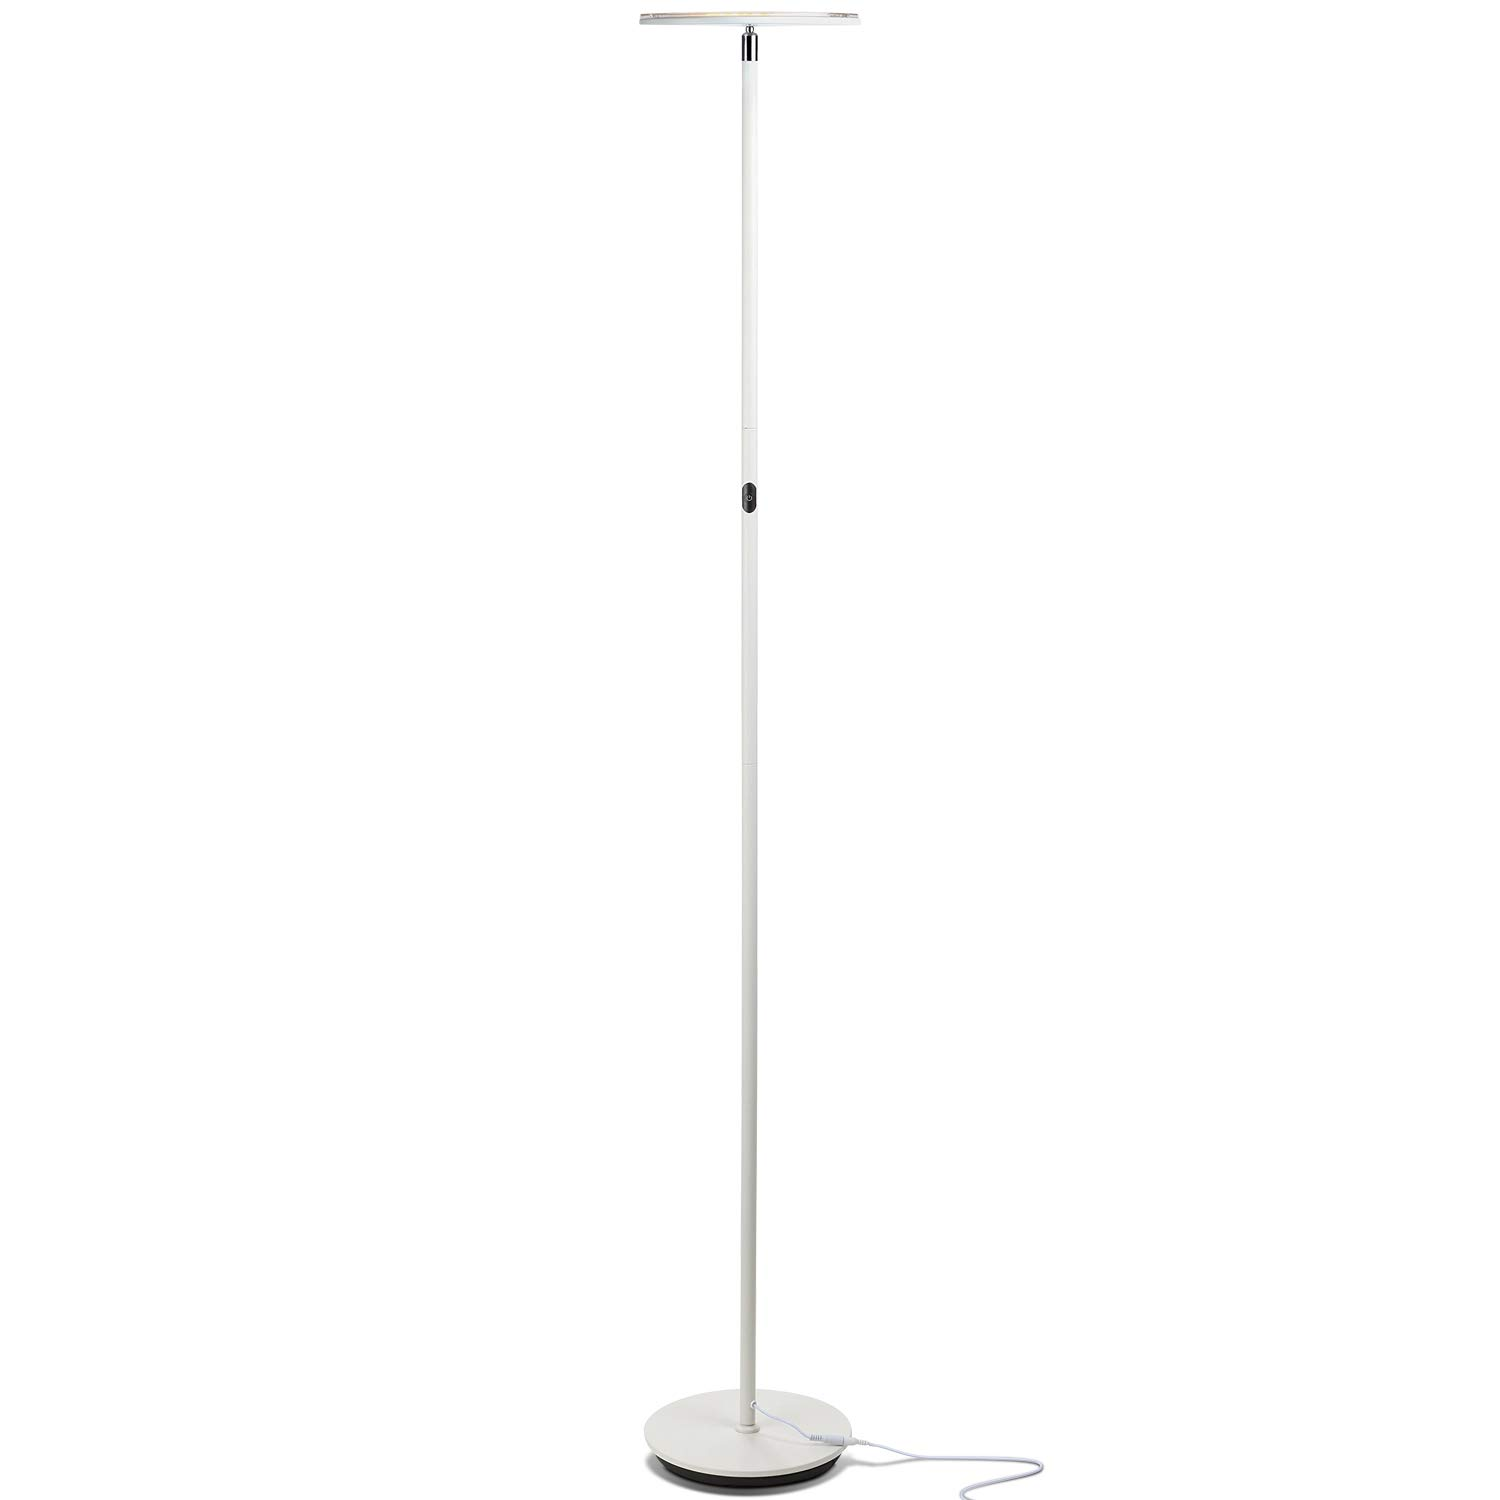 Brightech Sky Flux - Modern LED Torchiere Floor Lamp for Living Rooms & Bedrooms - Adjustable Warm to Cool White - Tall Pole, Standing Office Light - Bright, Minimalist & Contemporary Uplight - White